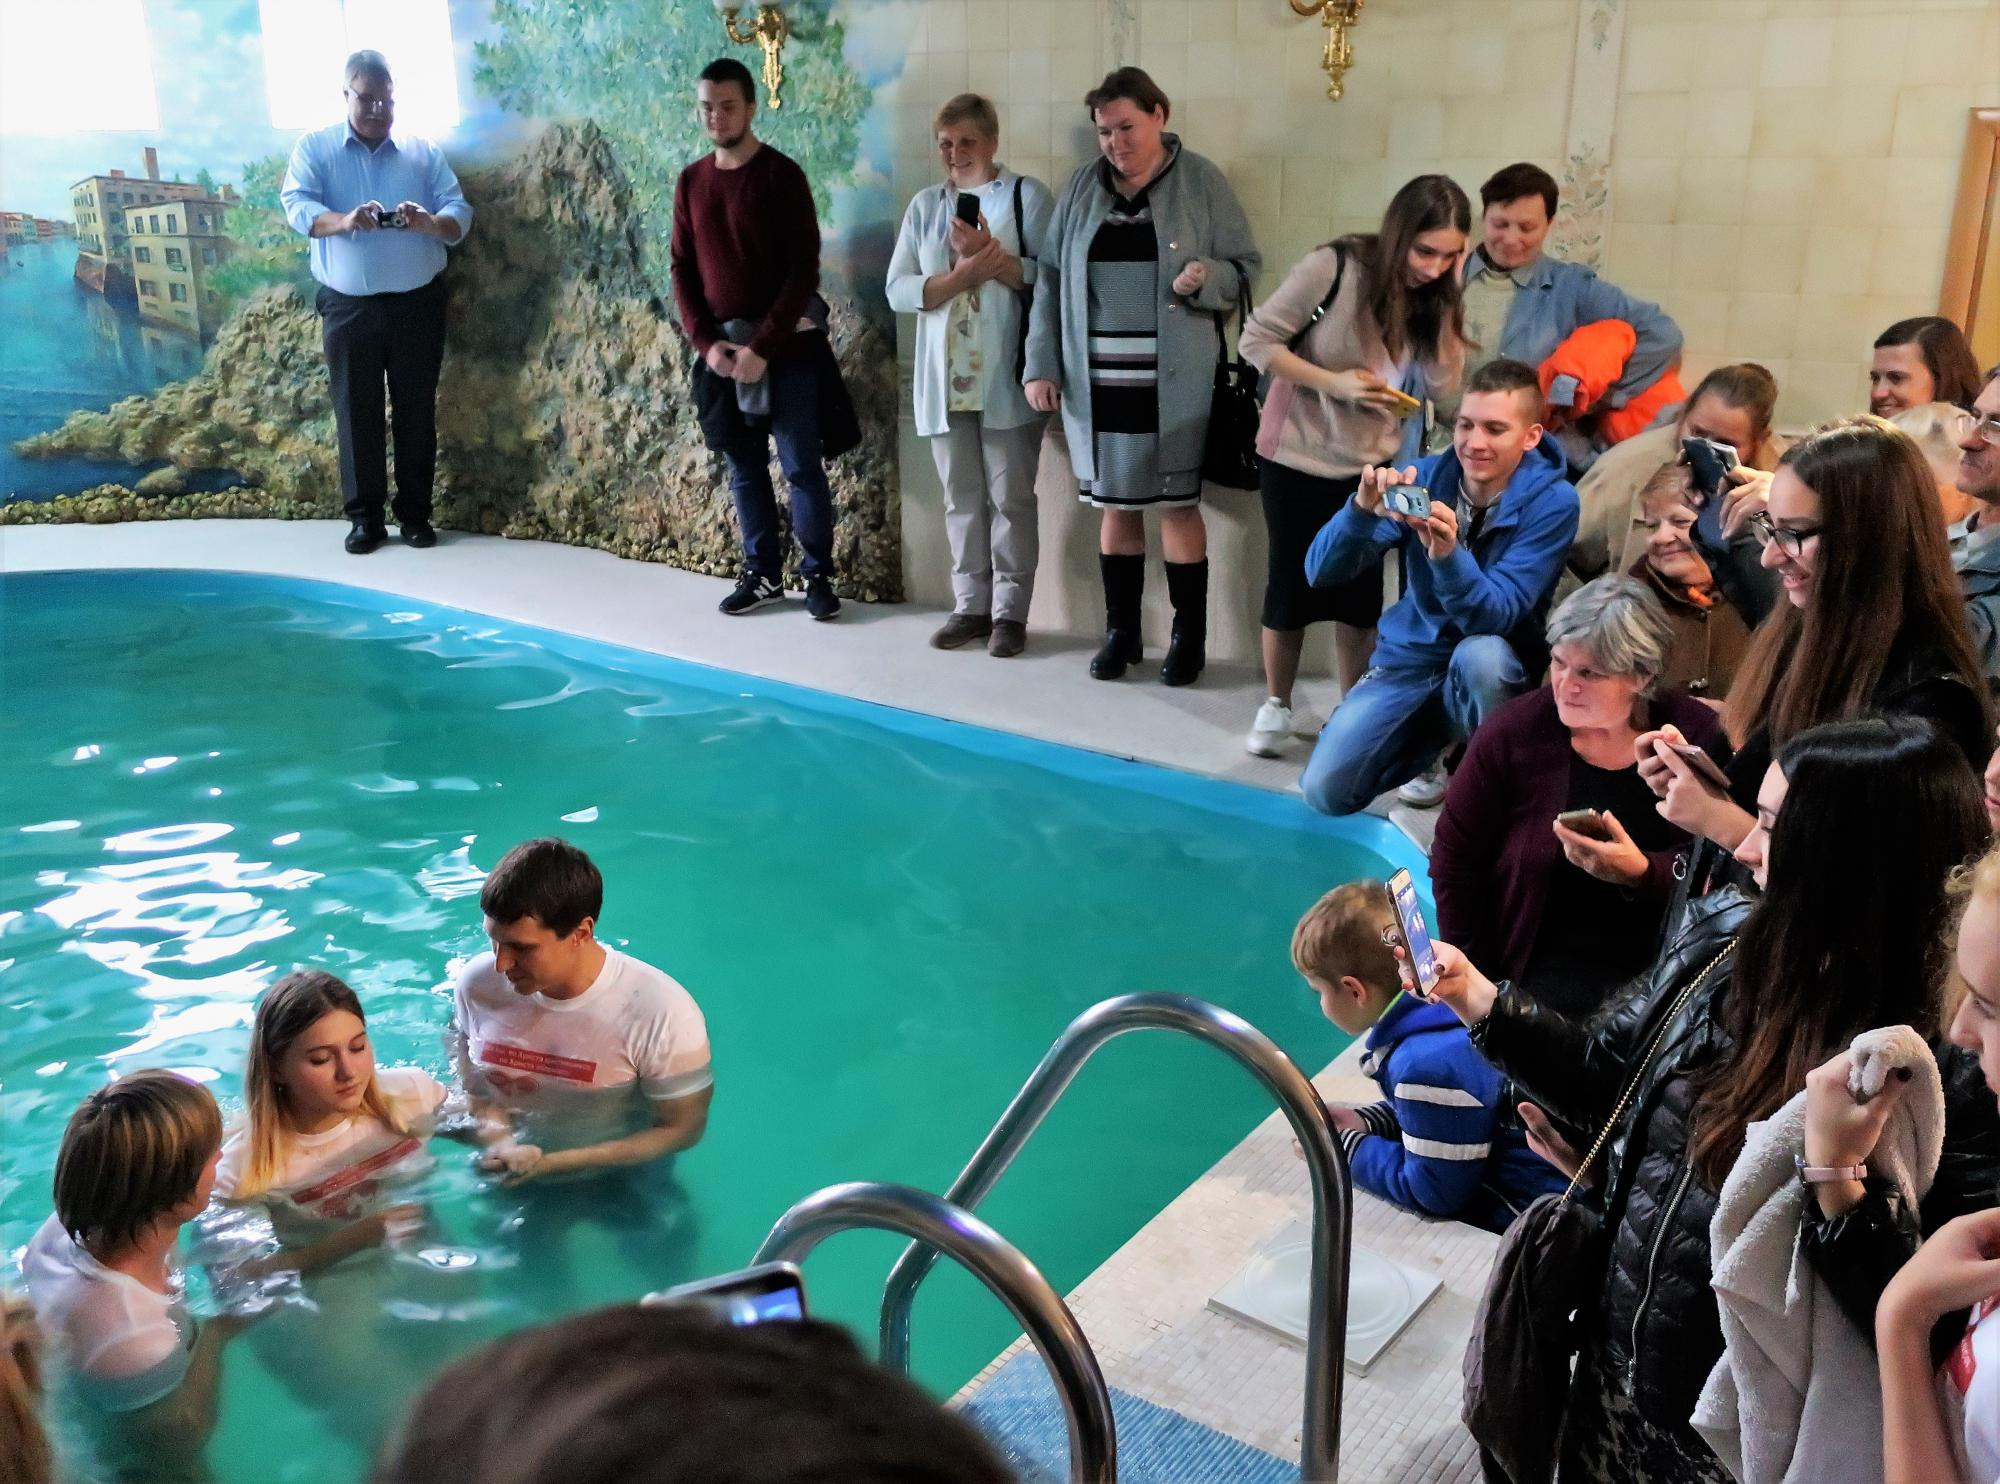 Seven women ages 16–22 were baptized at a nearby pool the day the European leaders visited. Photo: J. Nelson Kraybill